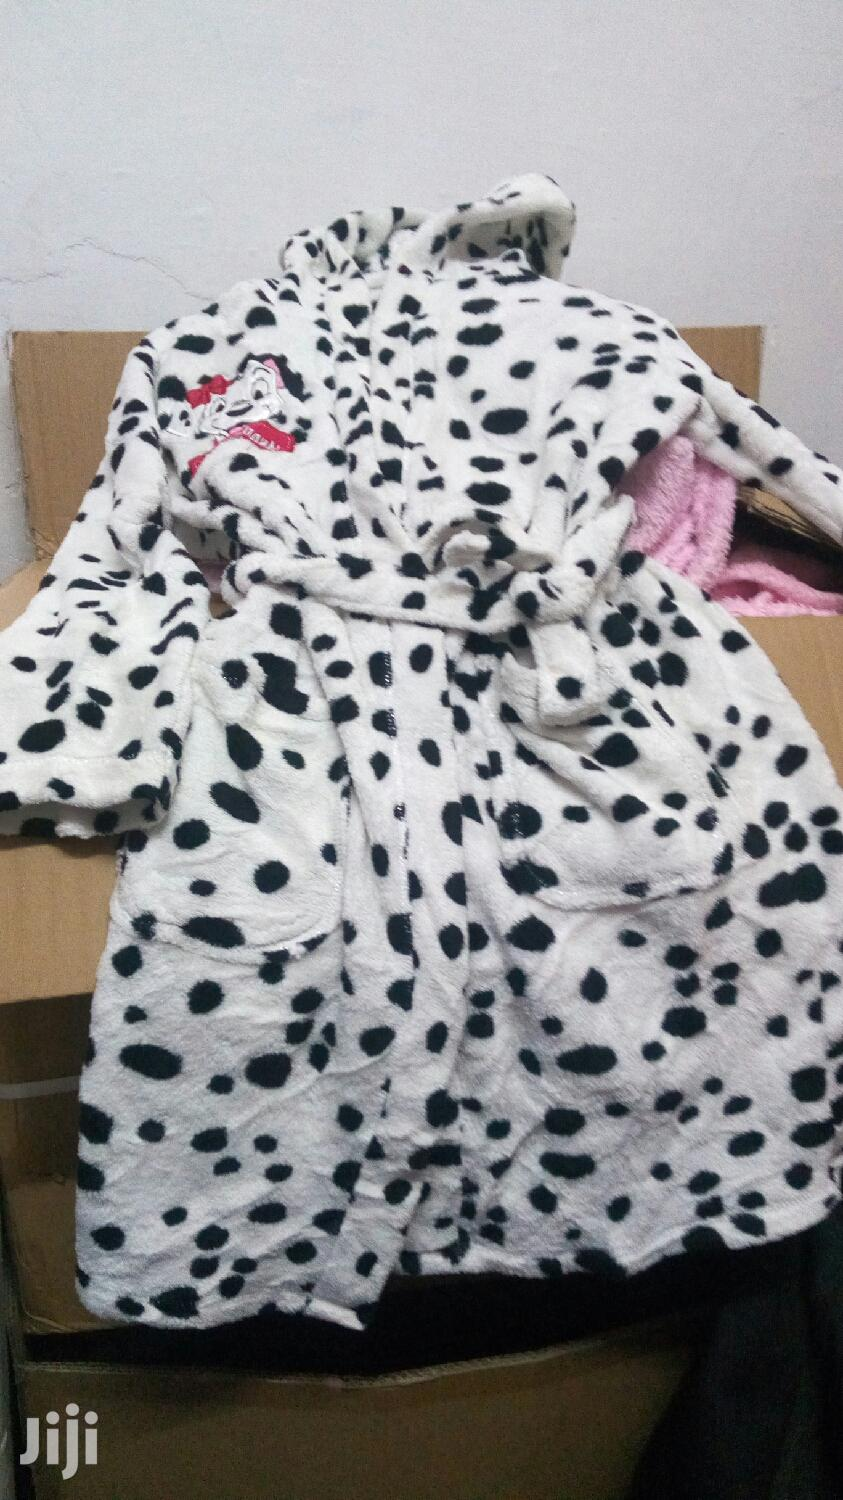 Bathing Gown/Robes/ Towel With A Hood | Children's Clothing for sale in Nairobi Central, Nairobi, Kenya